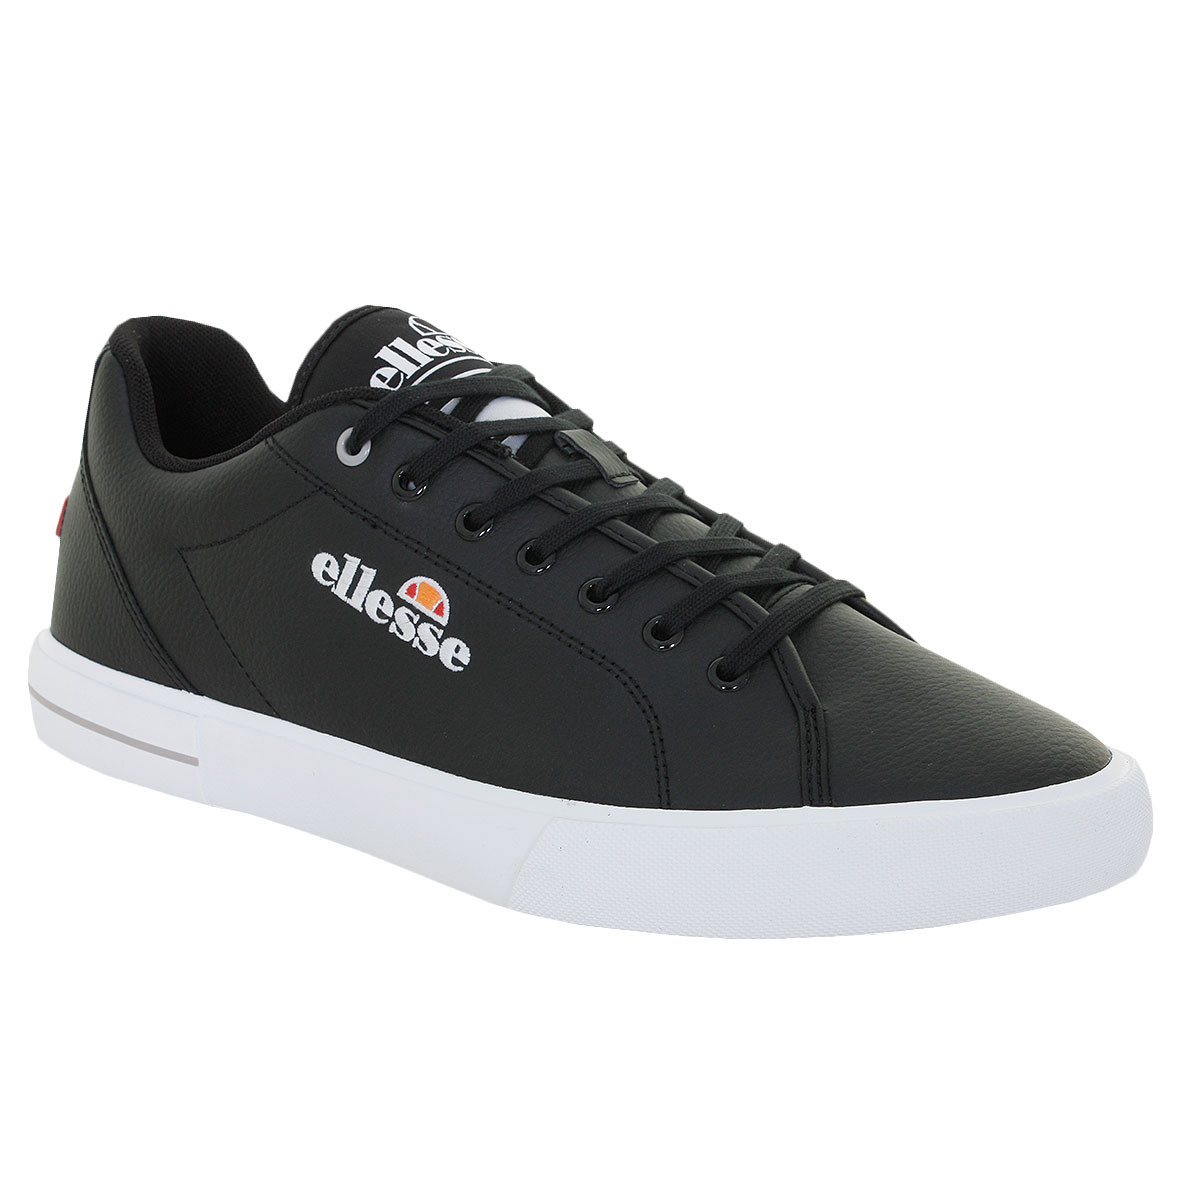 ad8ace468 Ellesse Mens 2019 Taggia Trainers